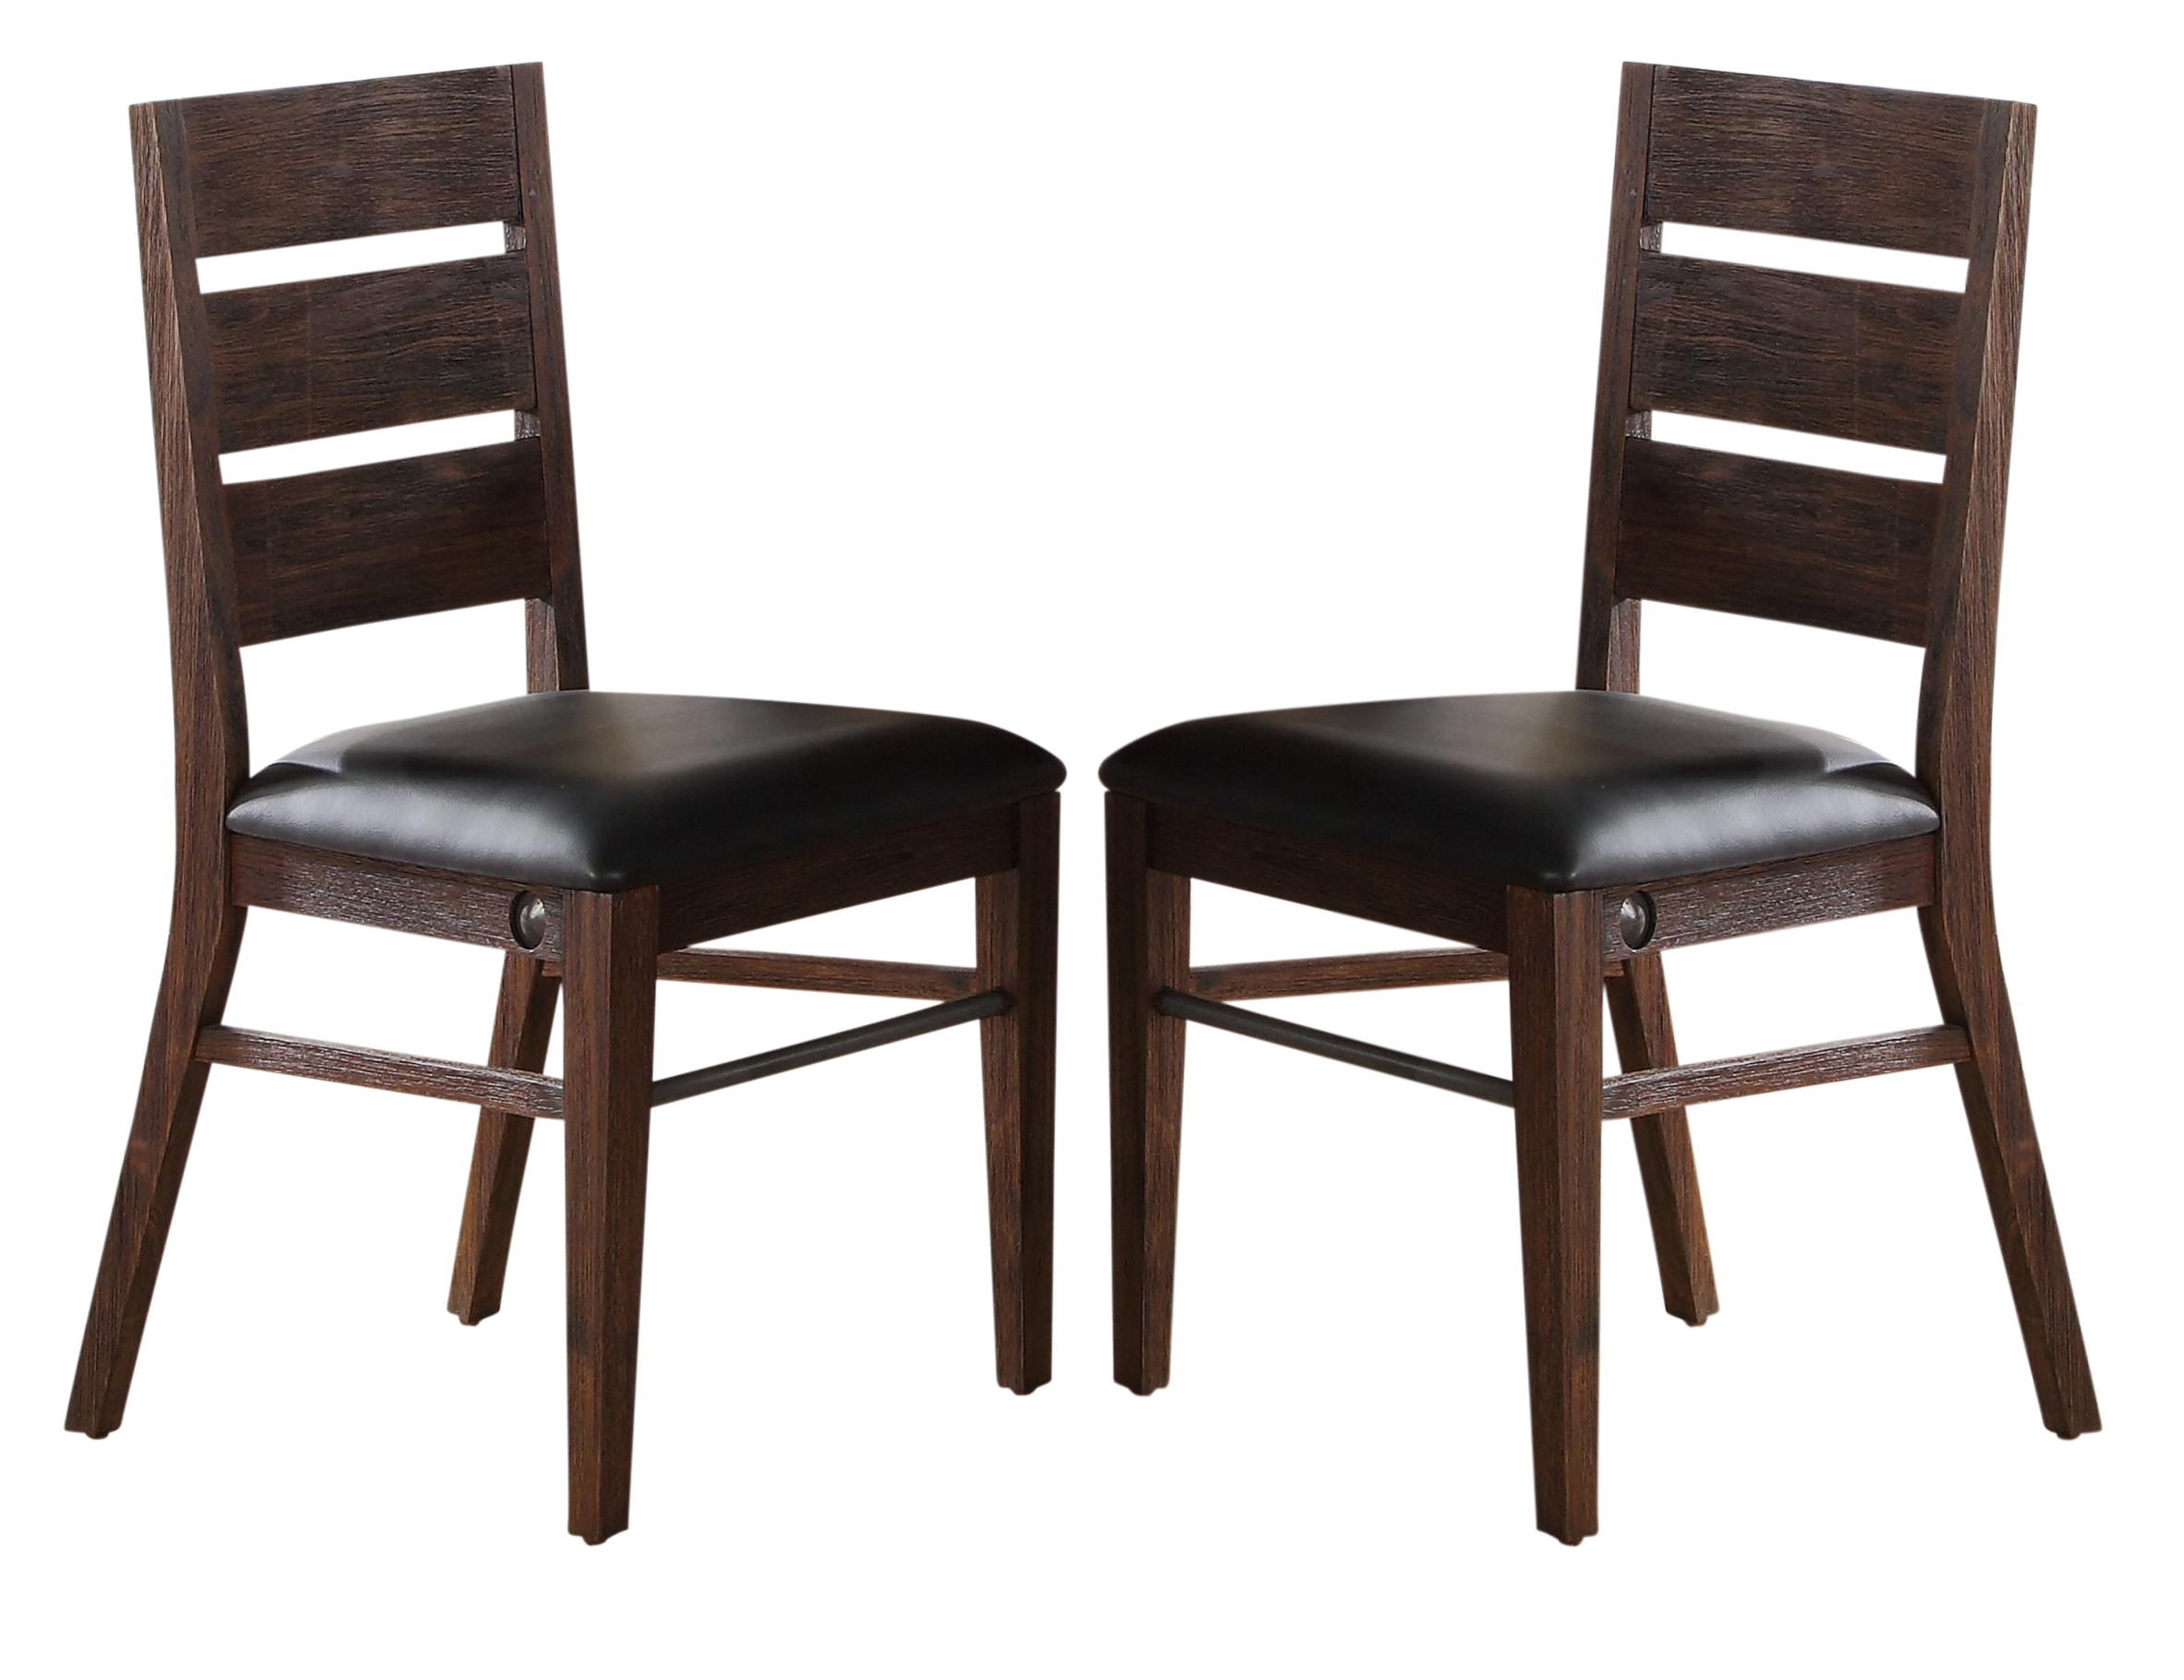 New Classic Furniture Fairway Dining Chair In Distressed